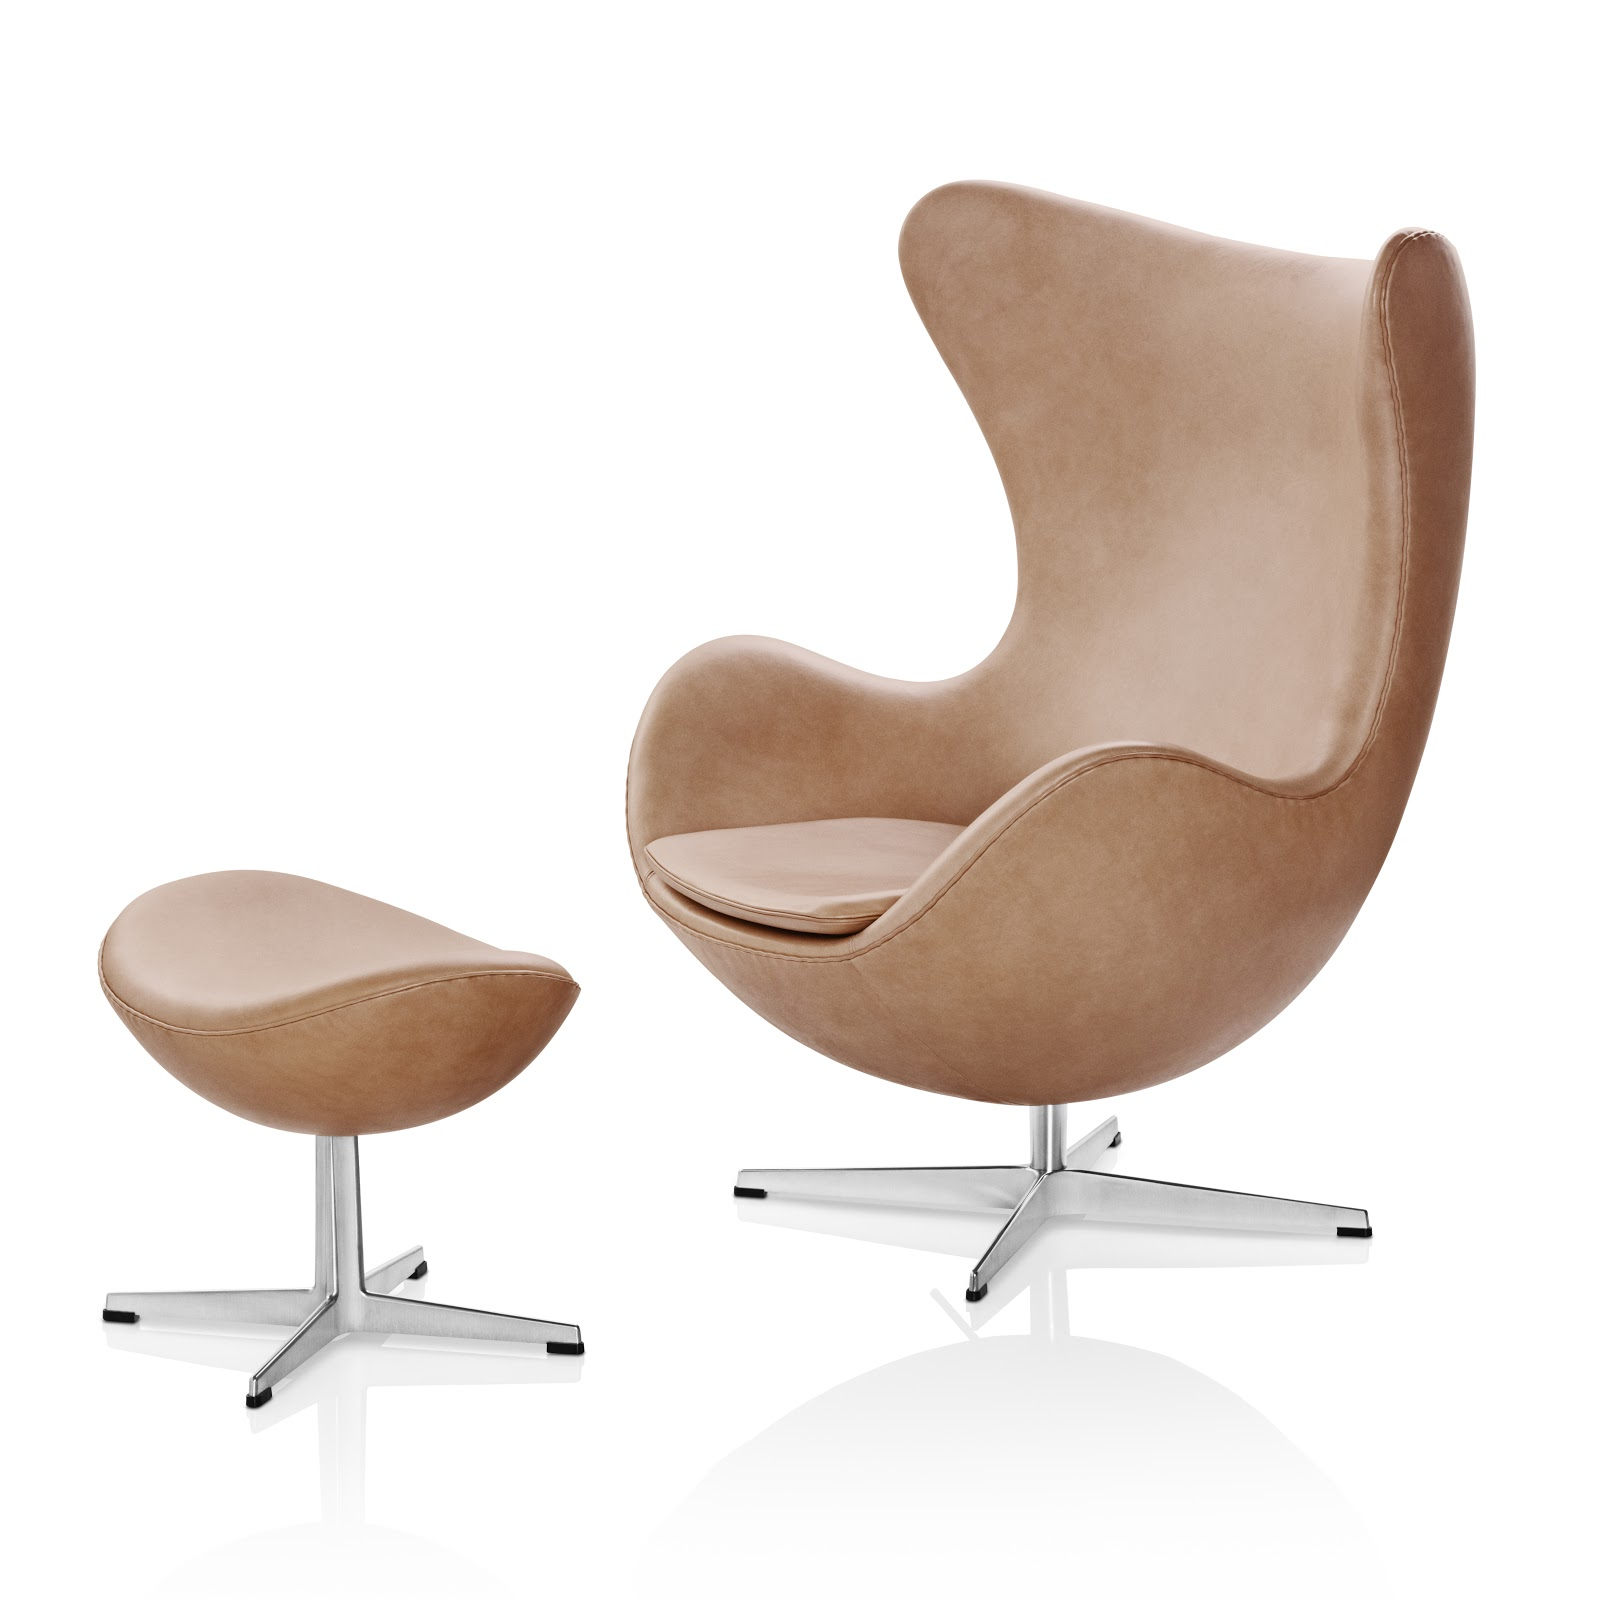 Rustic leather egg chair by arne jacobsen egg chair for Egg chair jacobsen